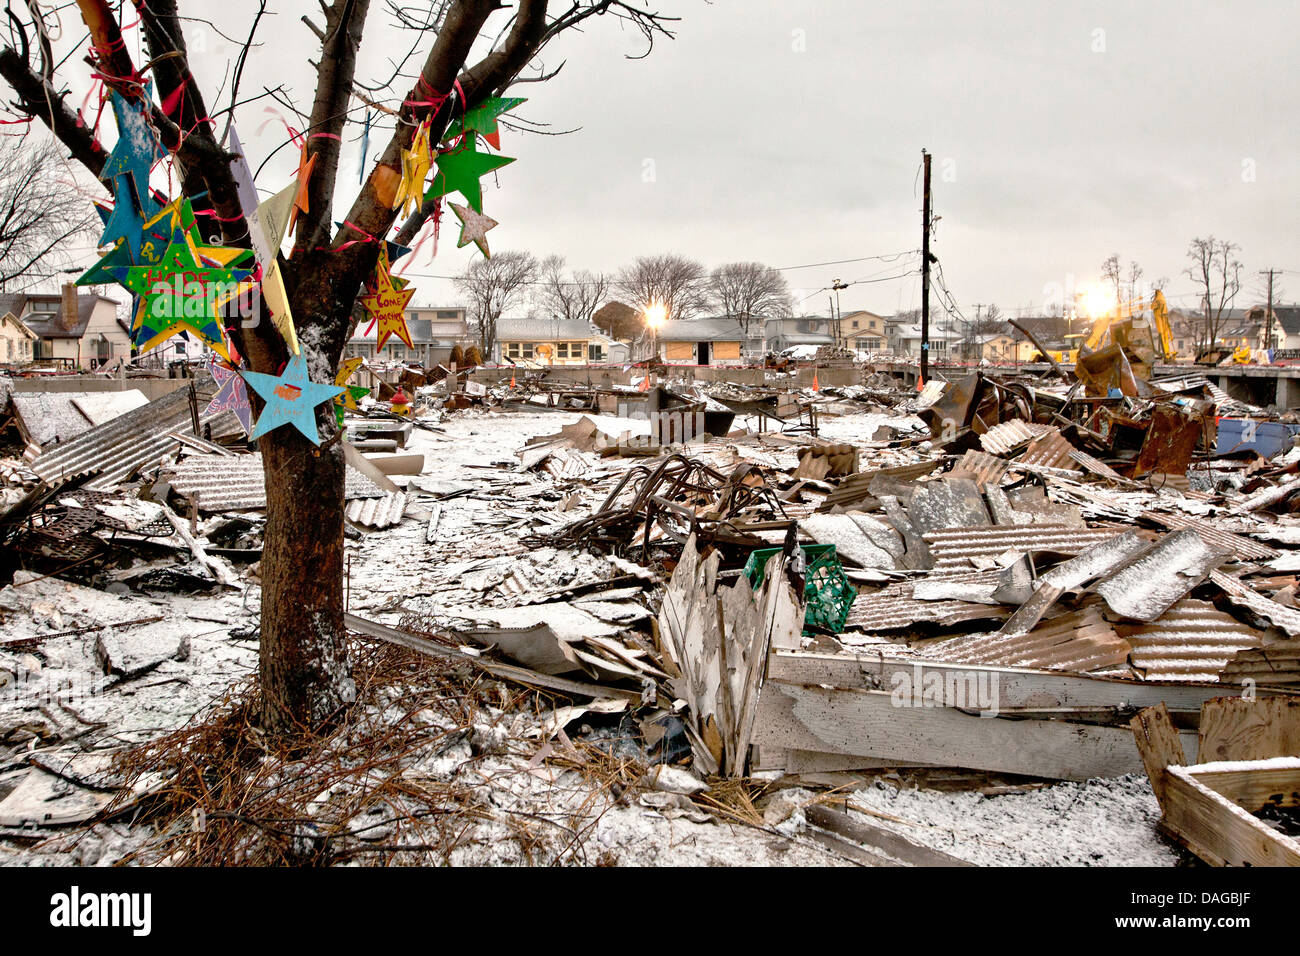 Stars decorate a tree standing amongst homes destroyed by Hurricane Sandy February 8, 2013 in Breezy Point, NY. - Stock Image